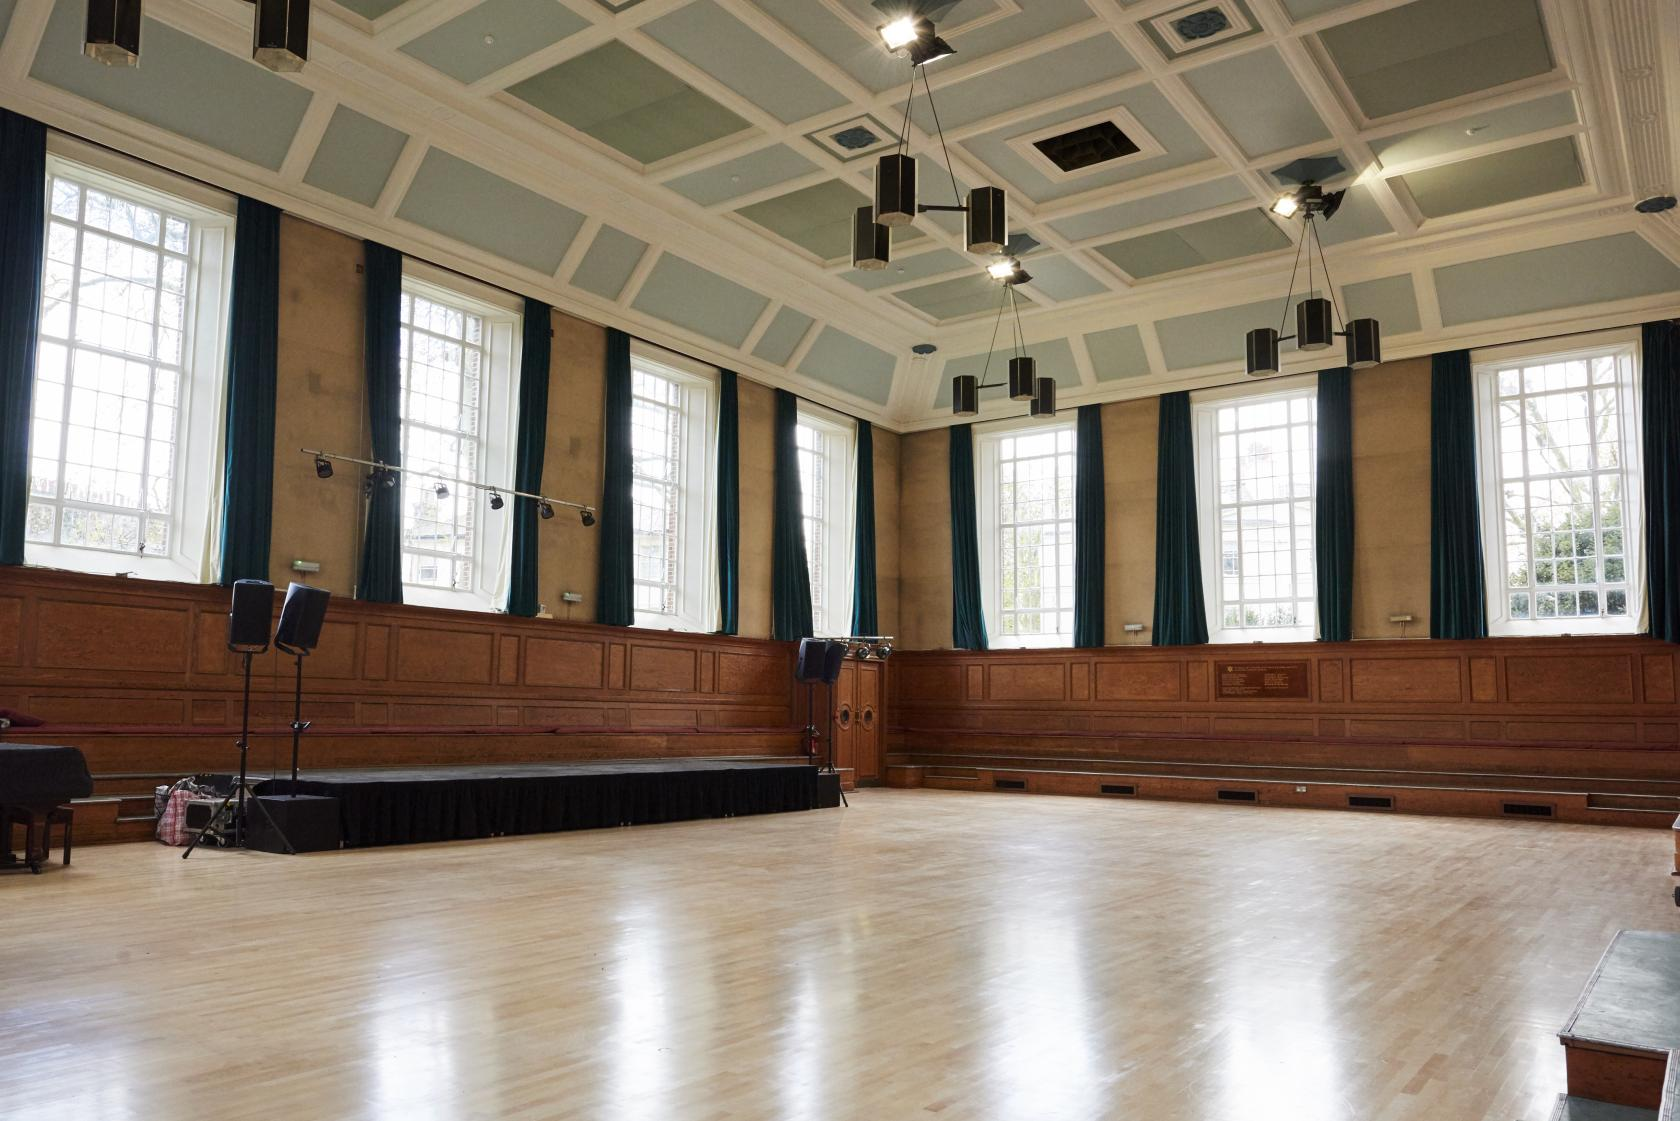 Kennedy Hall Cecil Sharp House Event Venue Hire